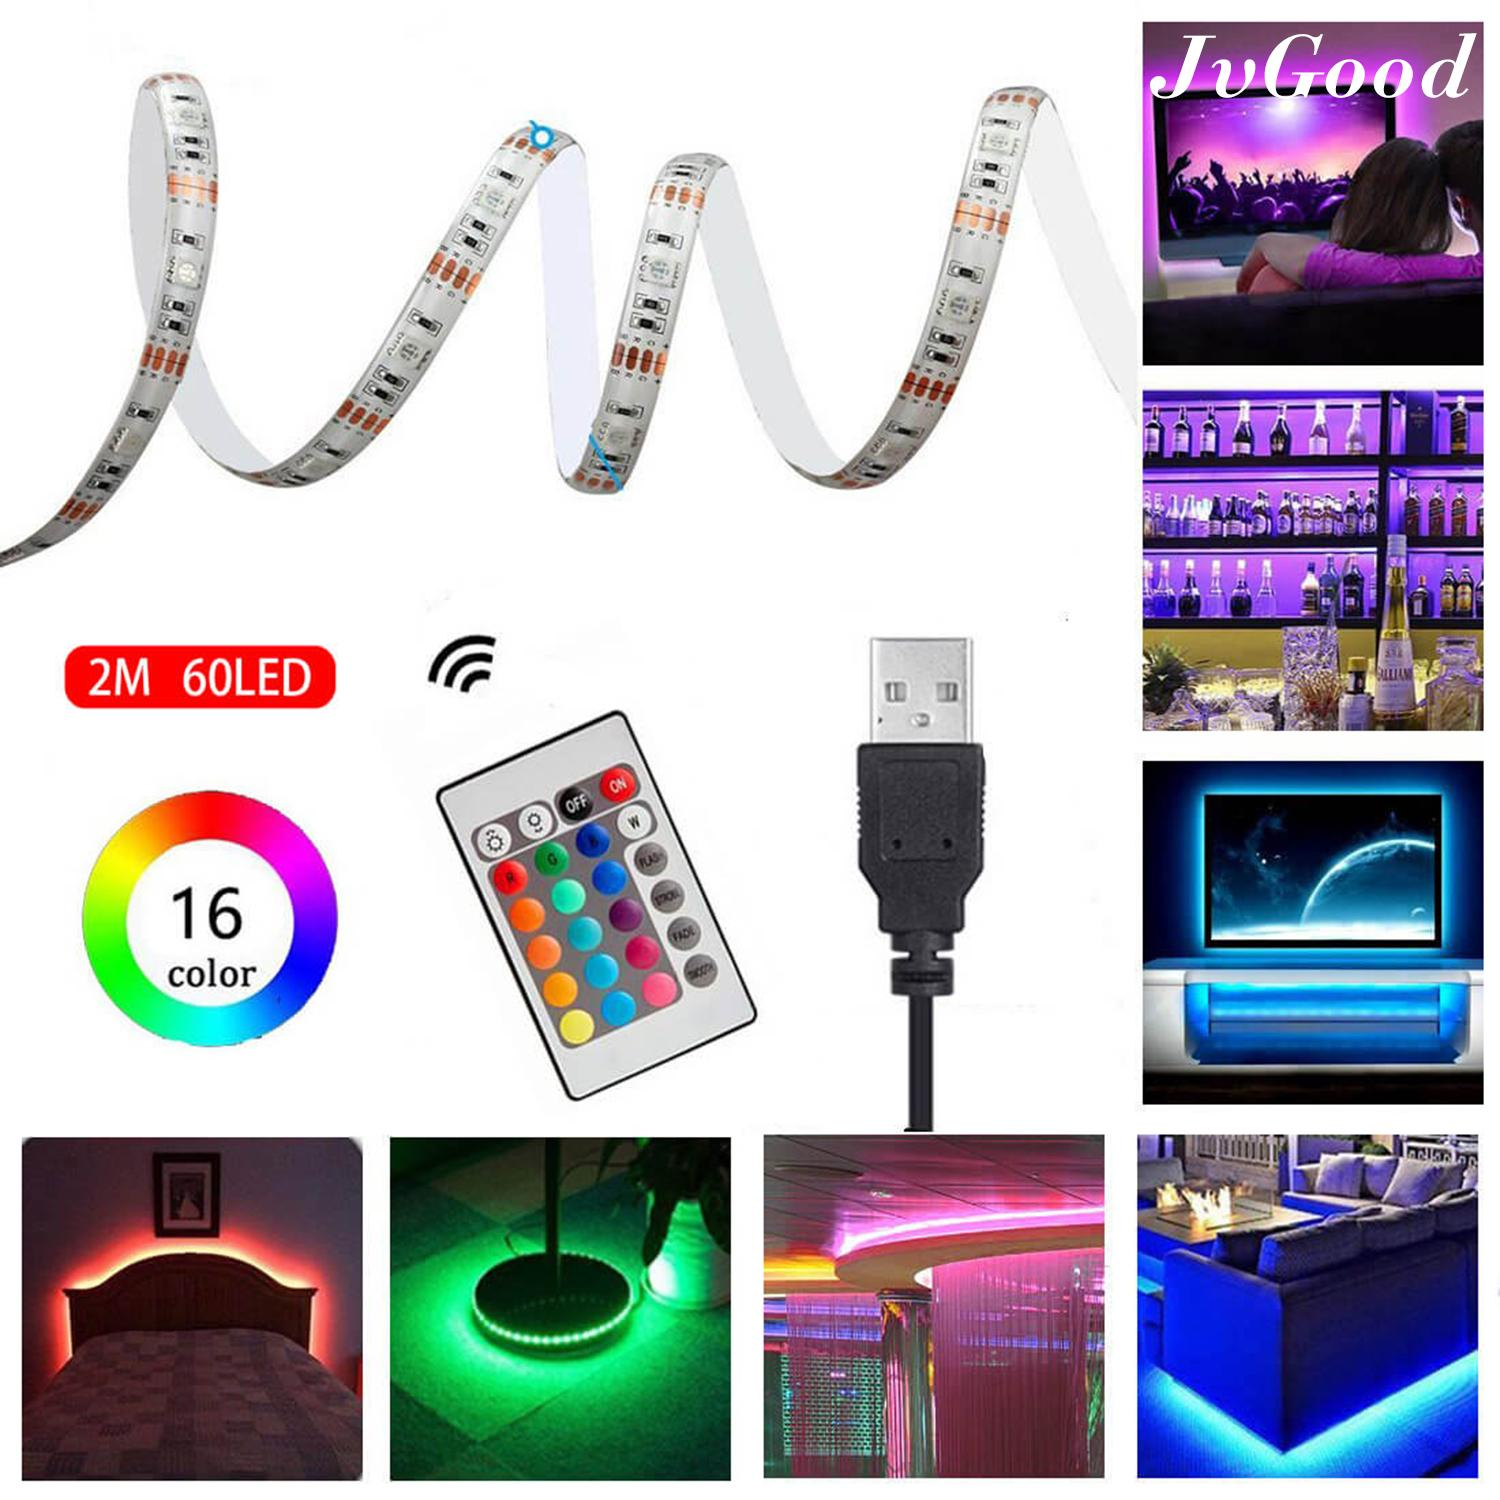 Led Lighting Prices Led Lighting For Sale Led Lamps Prices Brands Review In